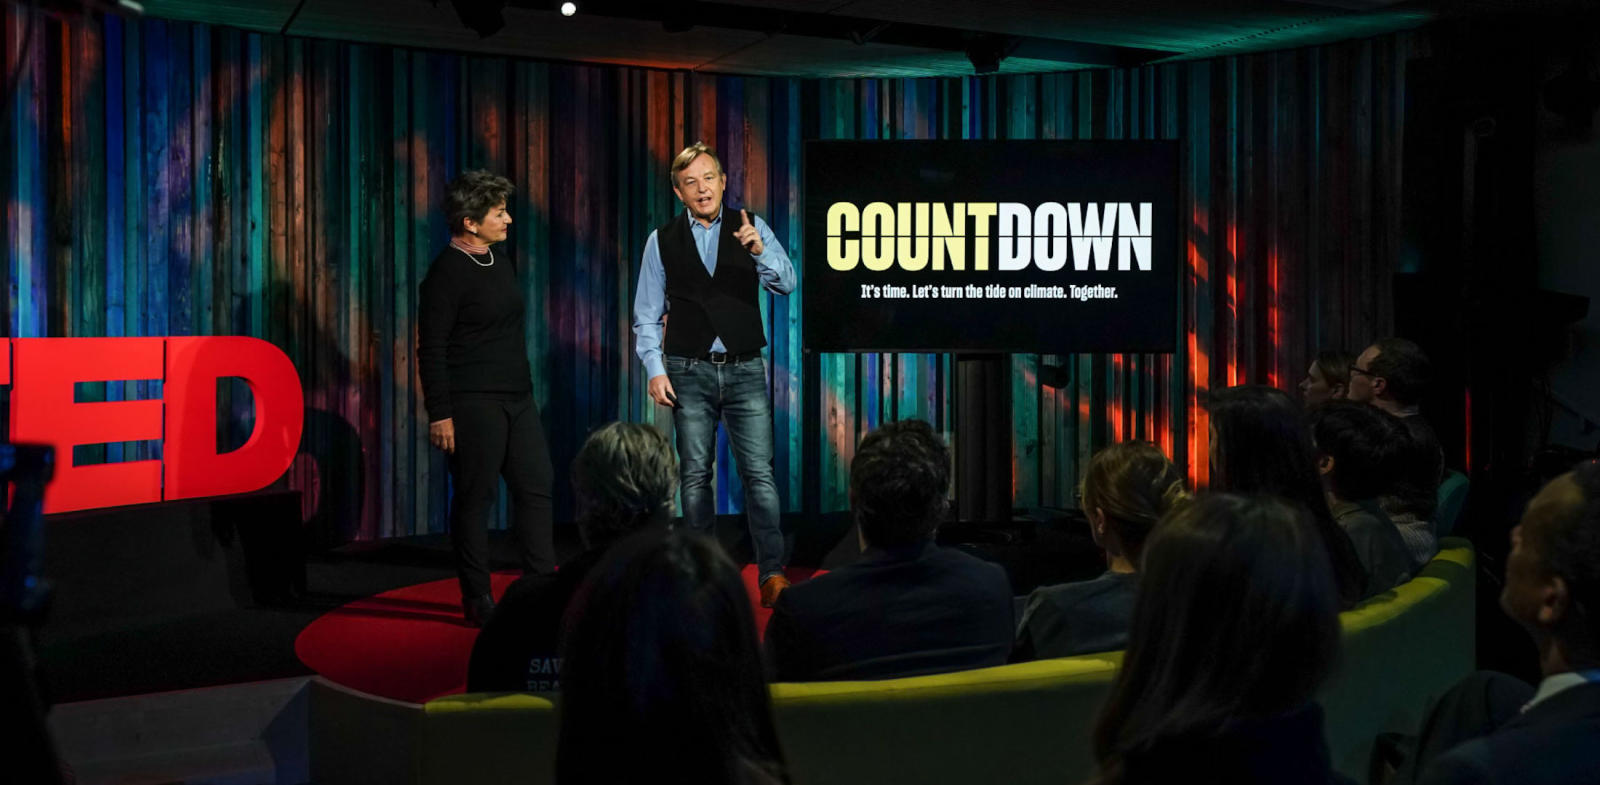 countdown by TED